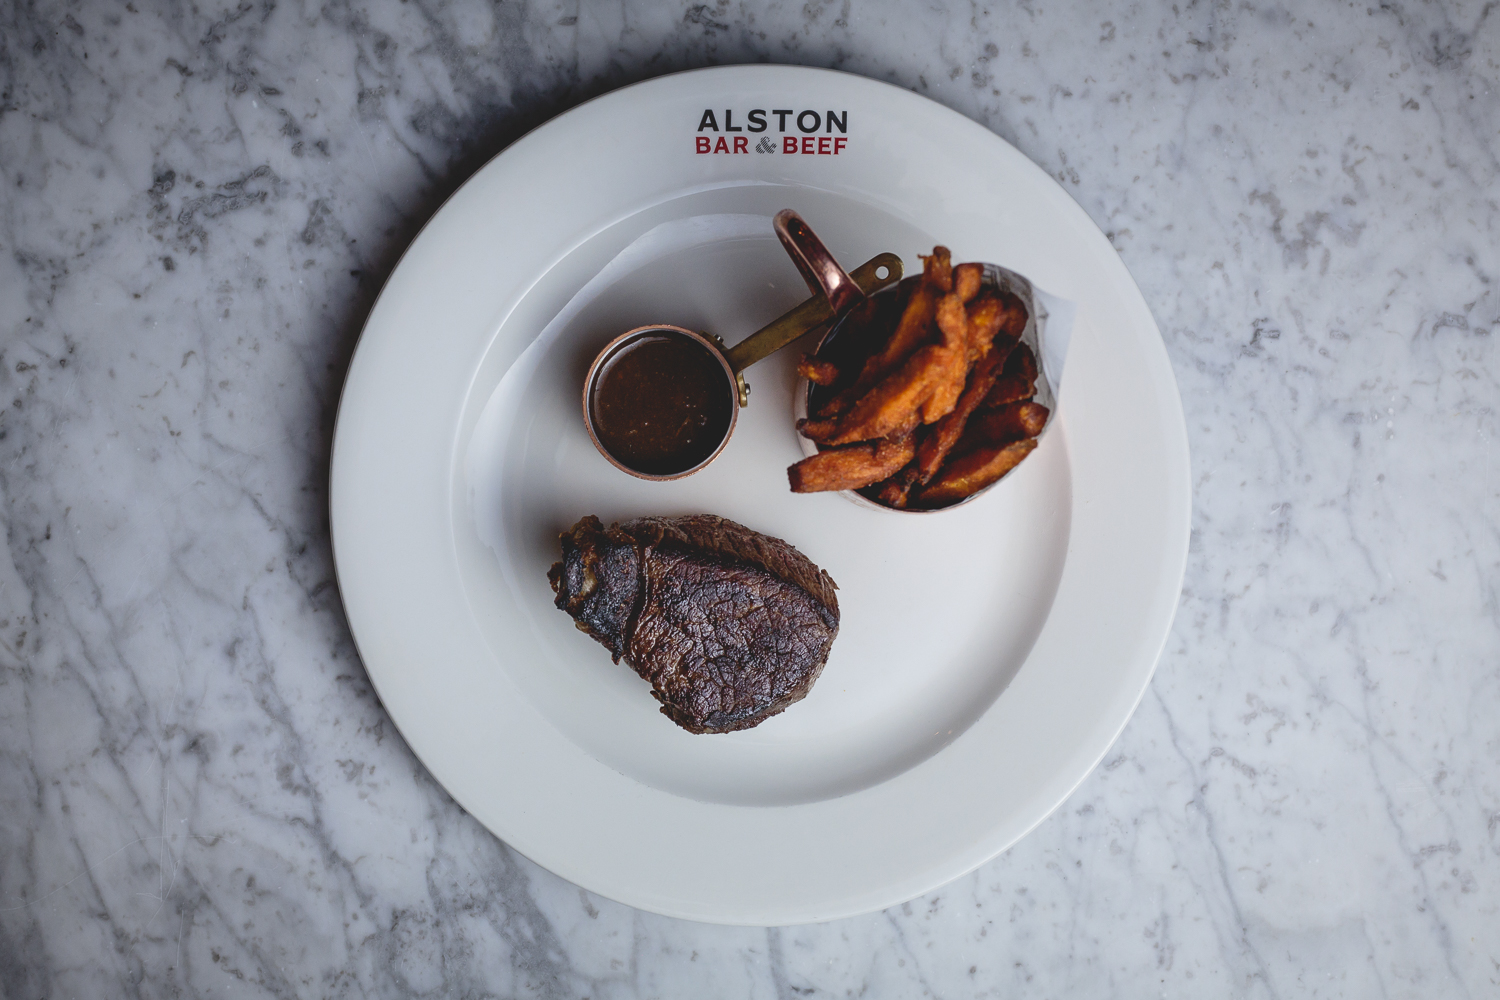 Image of Alston Bar & Beef